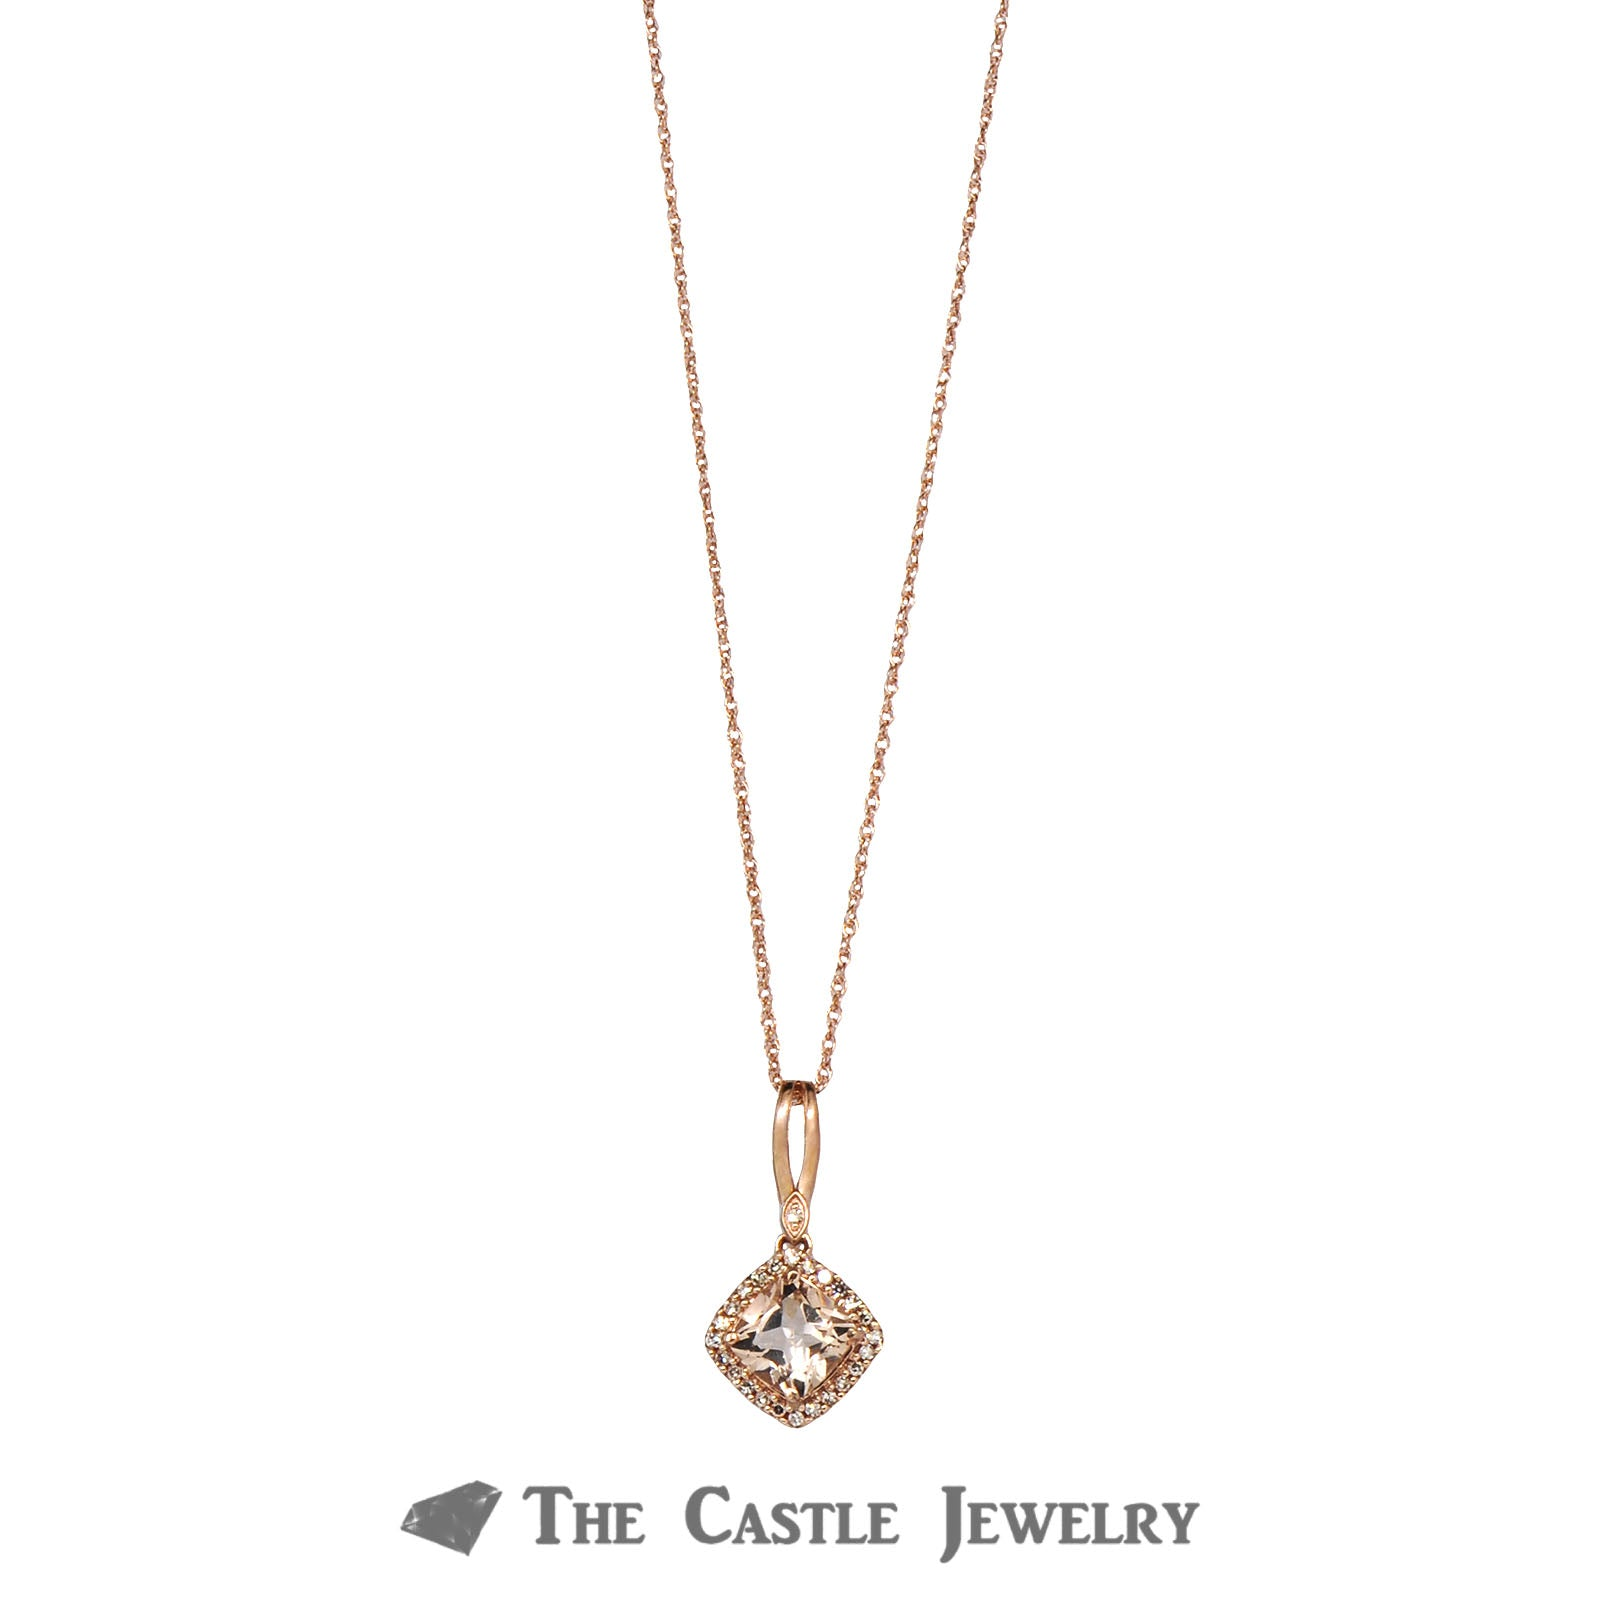 Cushion Cut Morganite Necklace with Diamond Bezel 14K Rose Gold